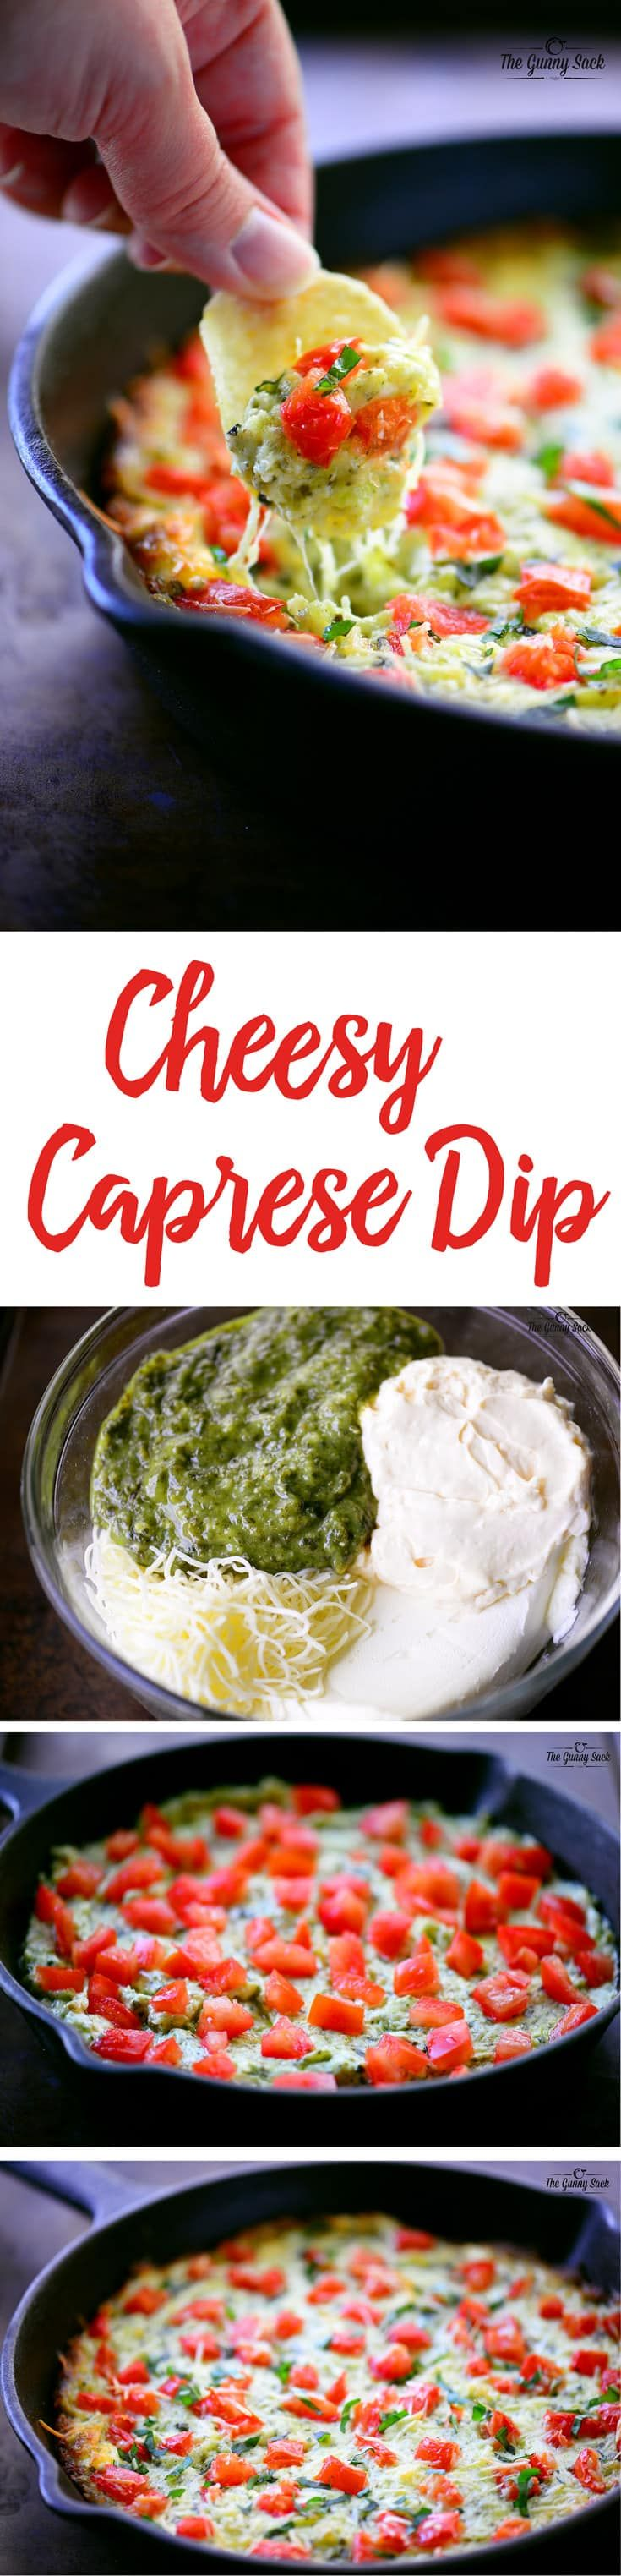 You will become an INSTANT HERO when you arrive at the party with this dip! It is awesome!